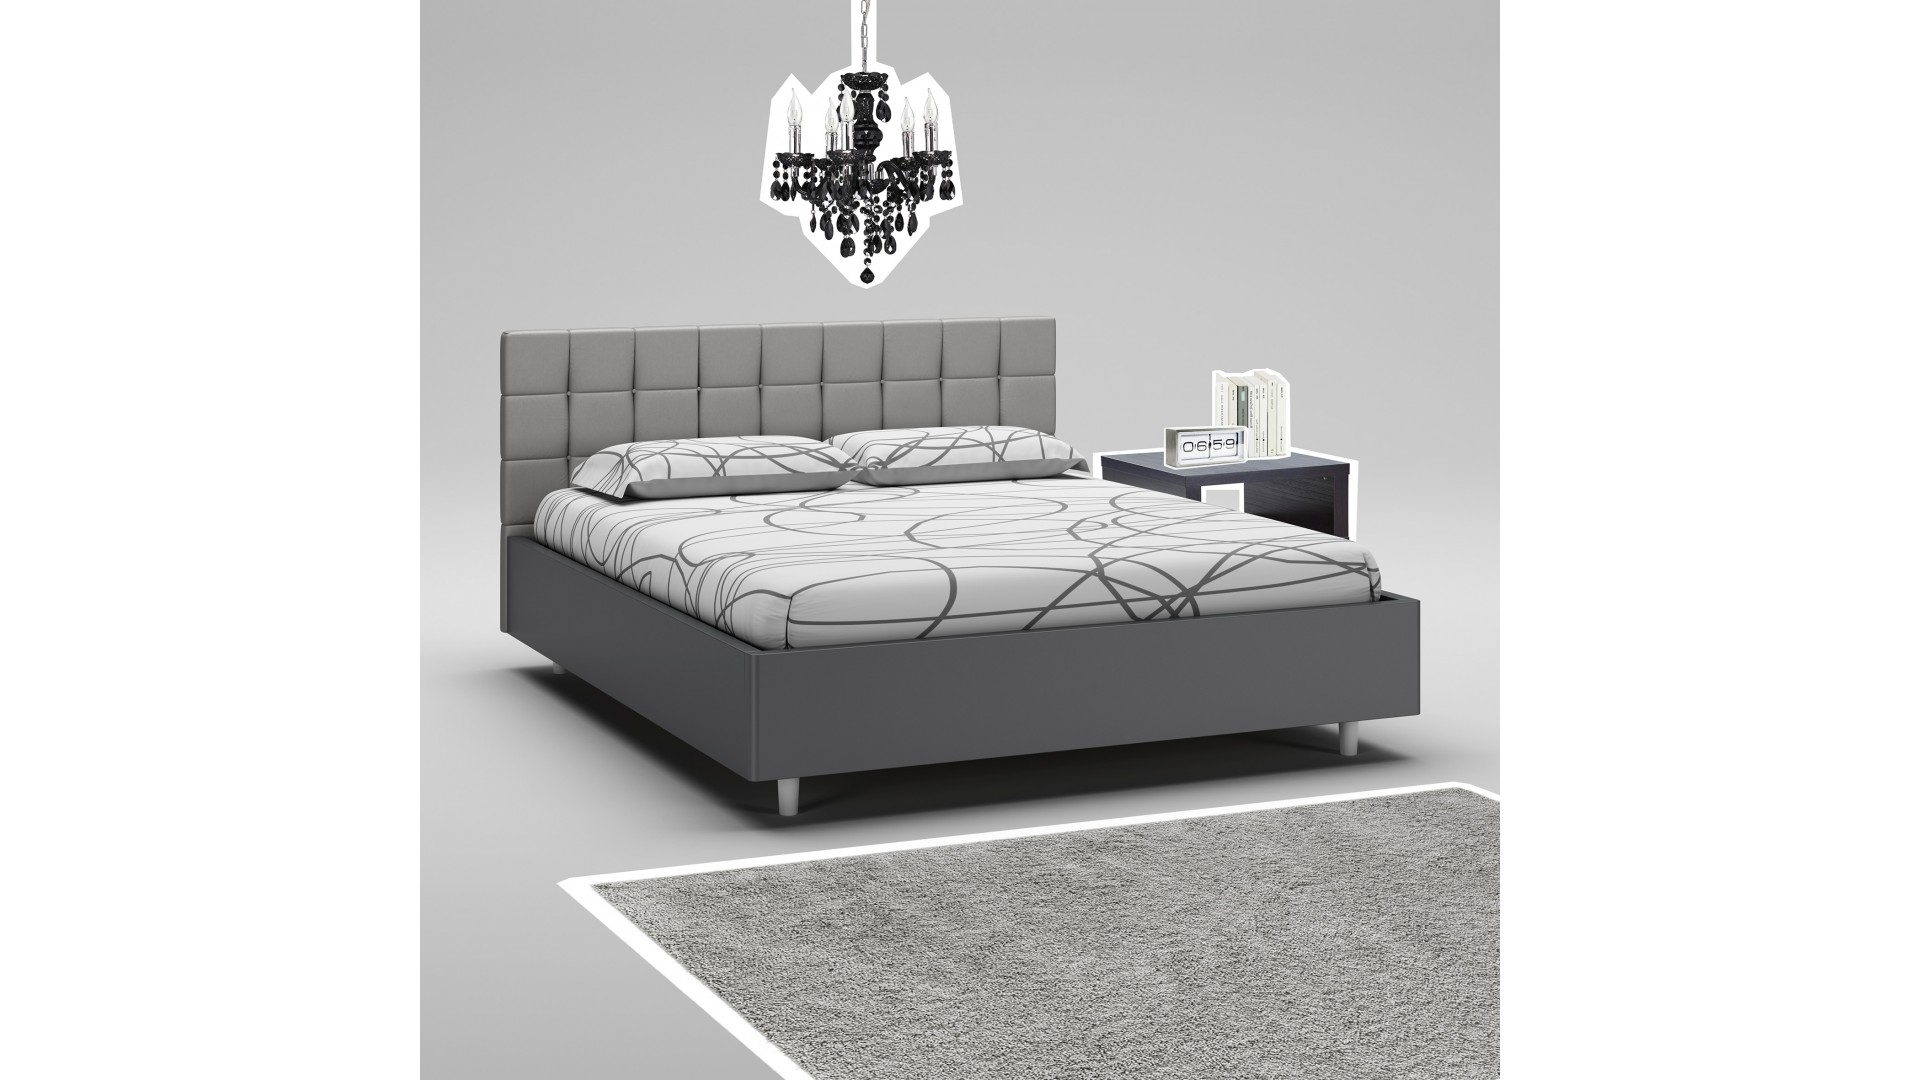 cadre de lit 160x200. Black Bedroom Furniture Sets. Home Design Ideas